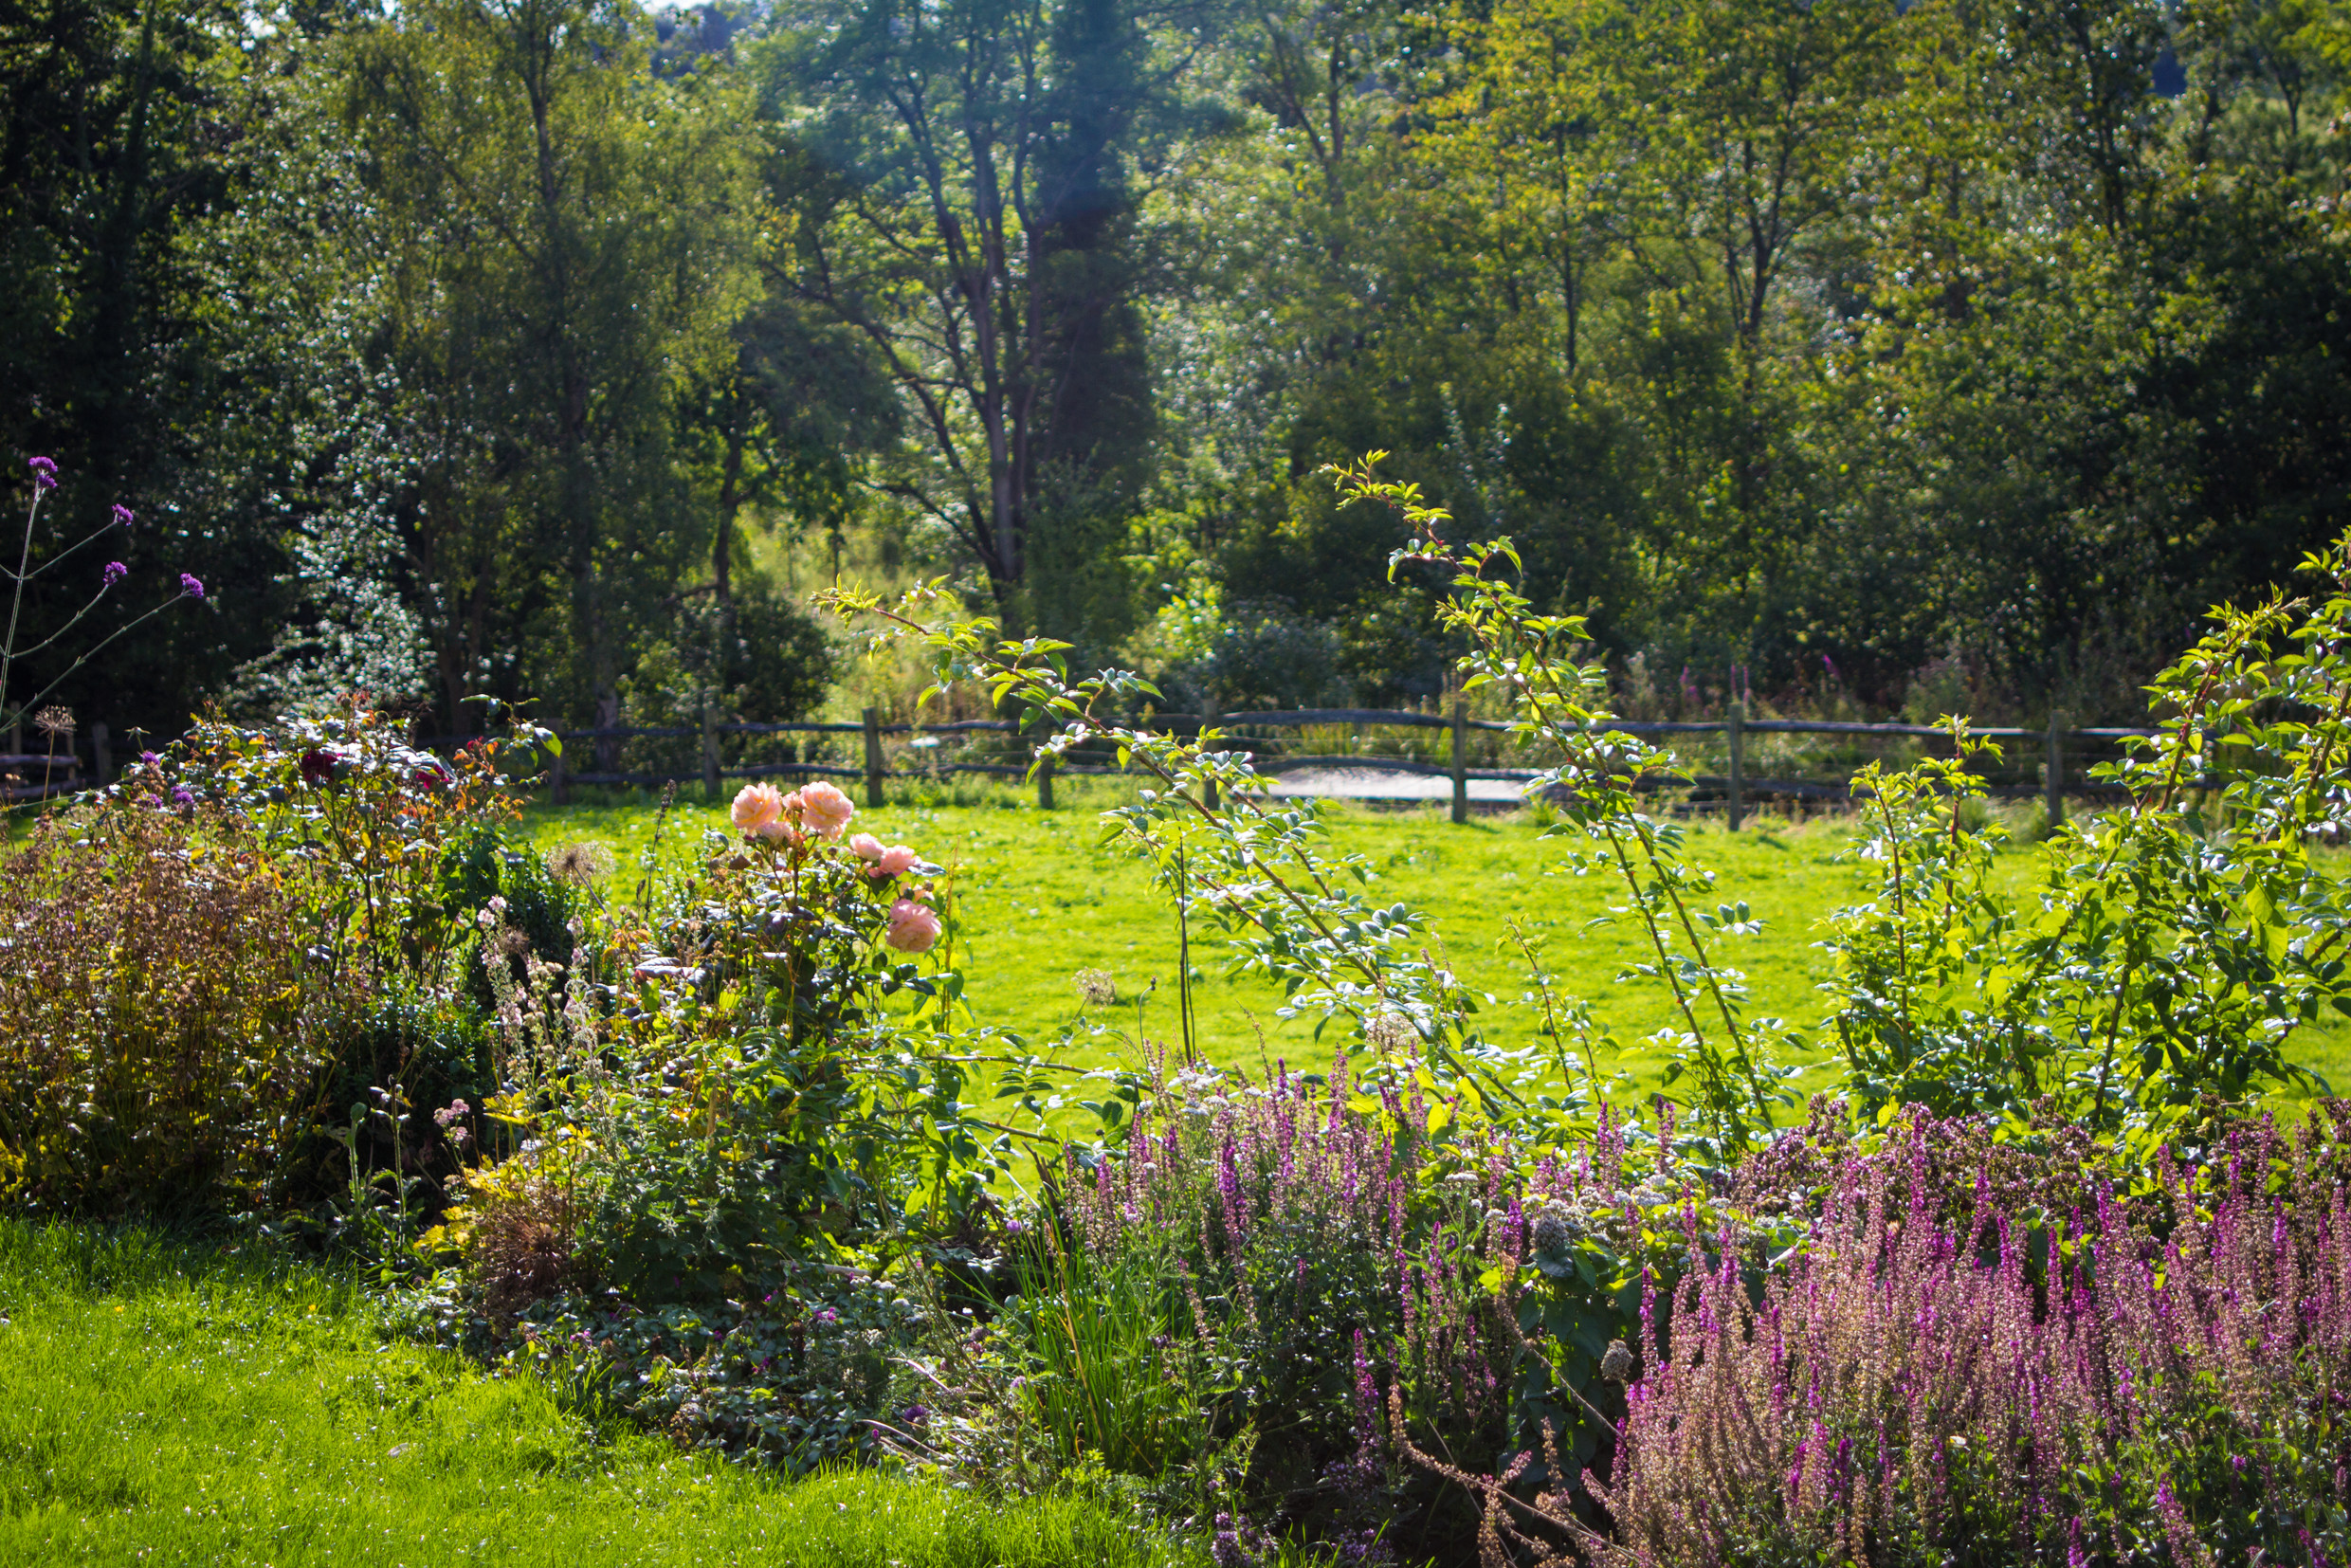 Family garden at one with nature